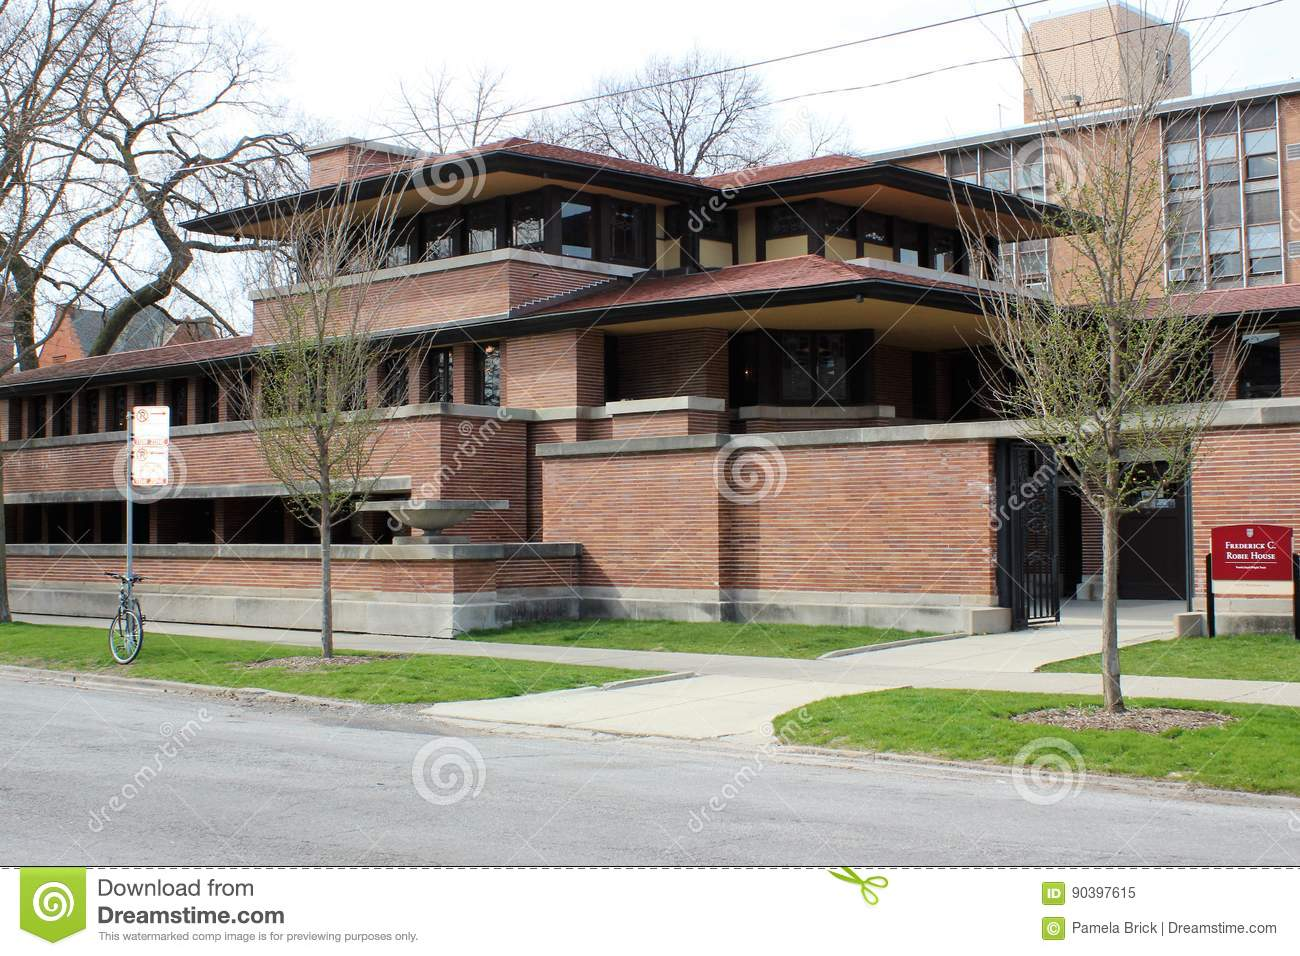 Frank Lloyd Wright Chicago Map.Frank Lloyd Wright S Robie House Chicago Editorial Image Image Of